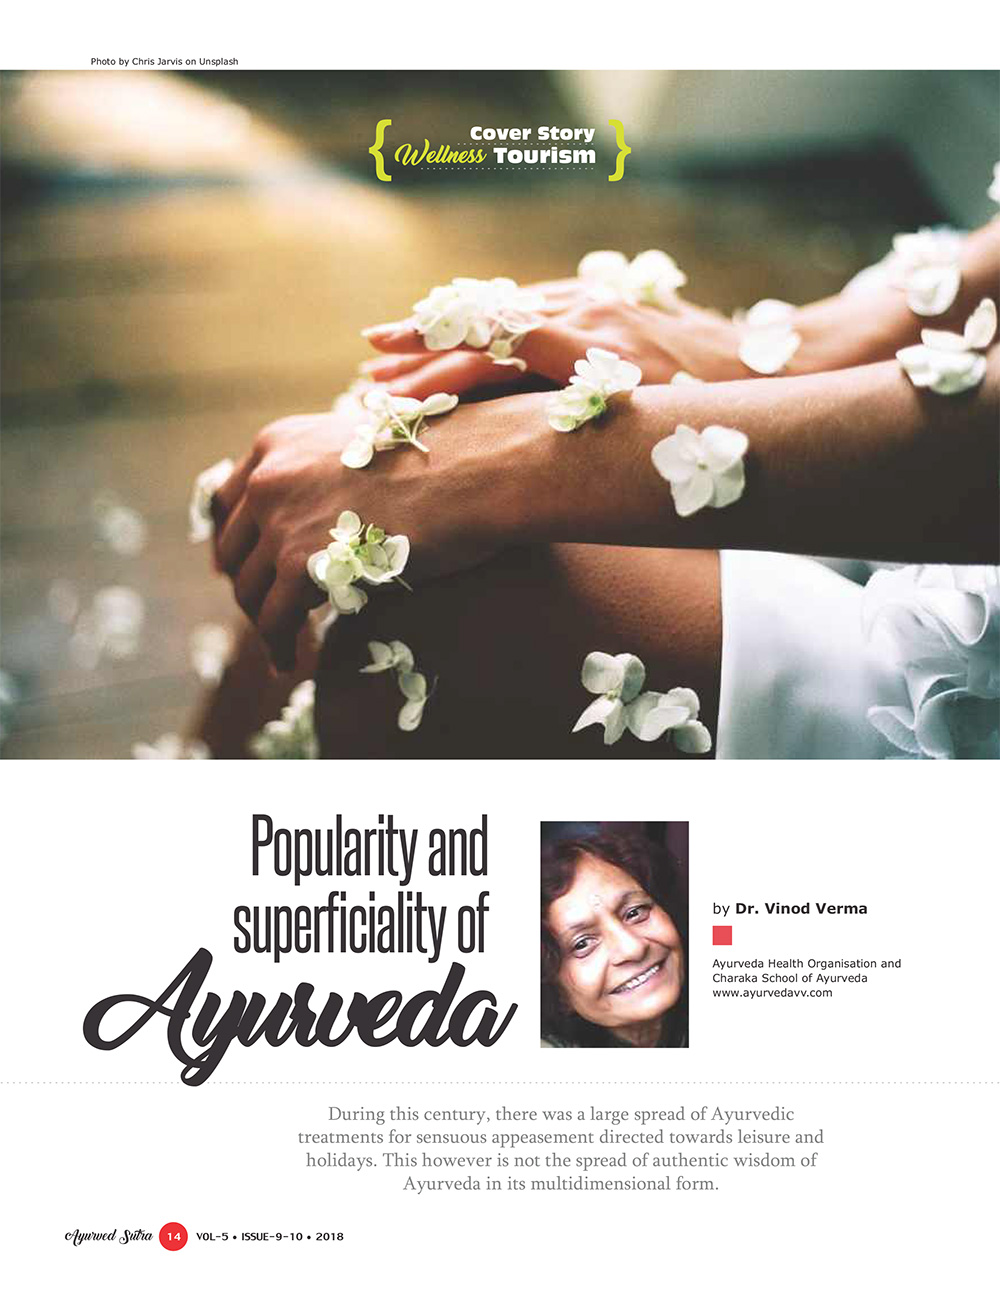 Ayurvedsutra Vol 05 issue 09 10 16 - Popularity and superficiality of Ayurveda